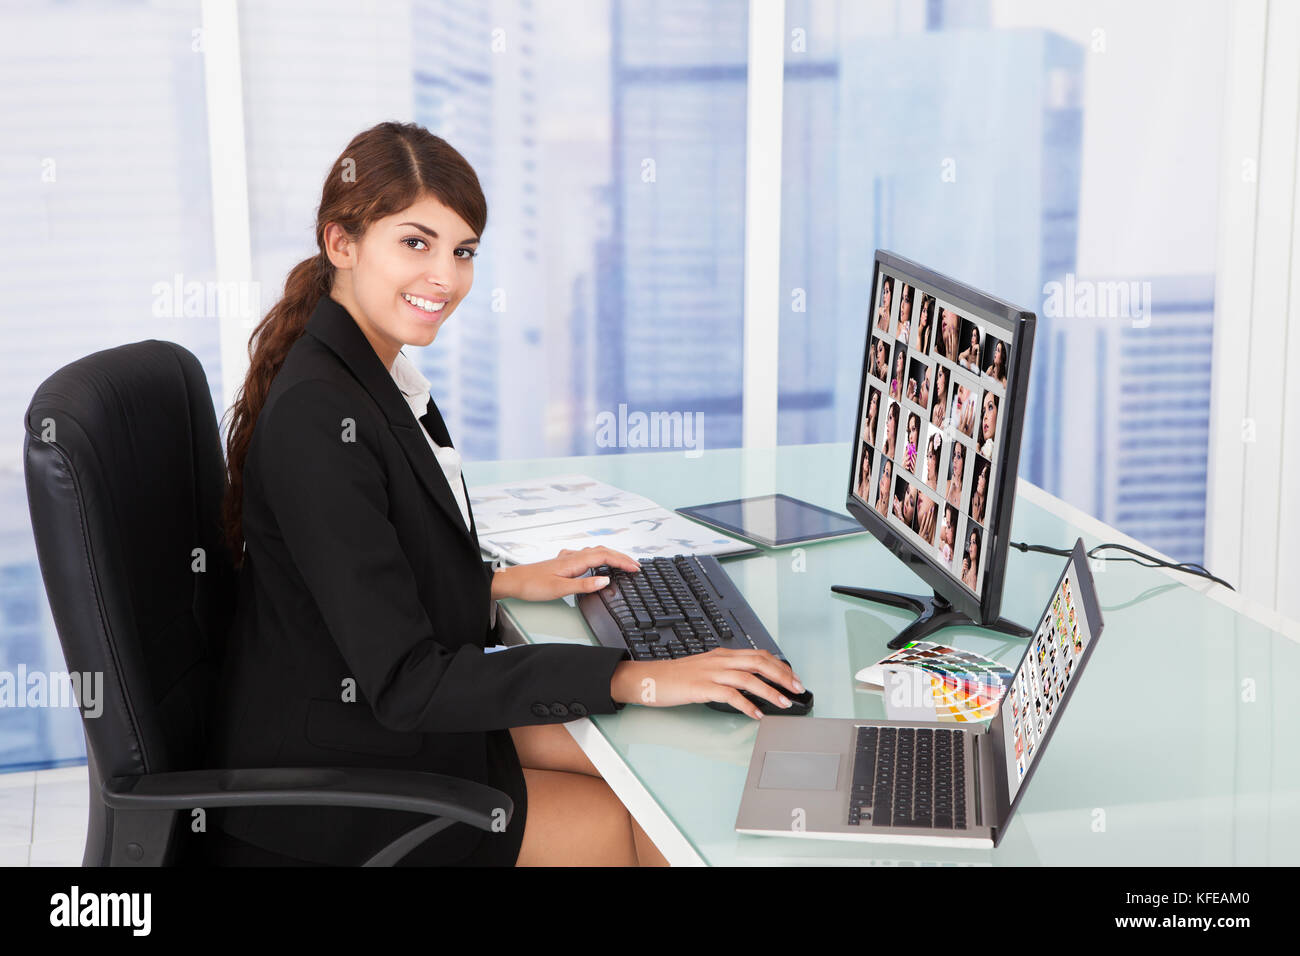 Young businesswoman looking at color swatches at computer desk in office Photo Stock